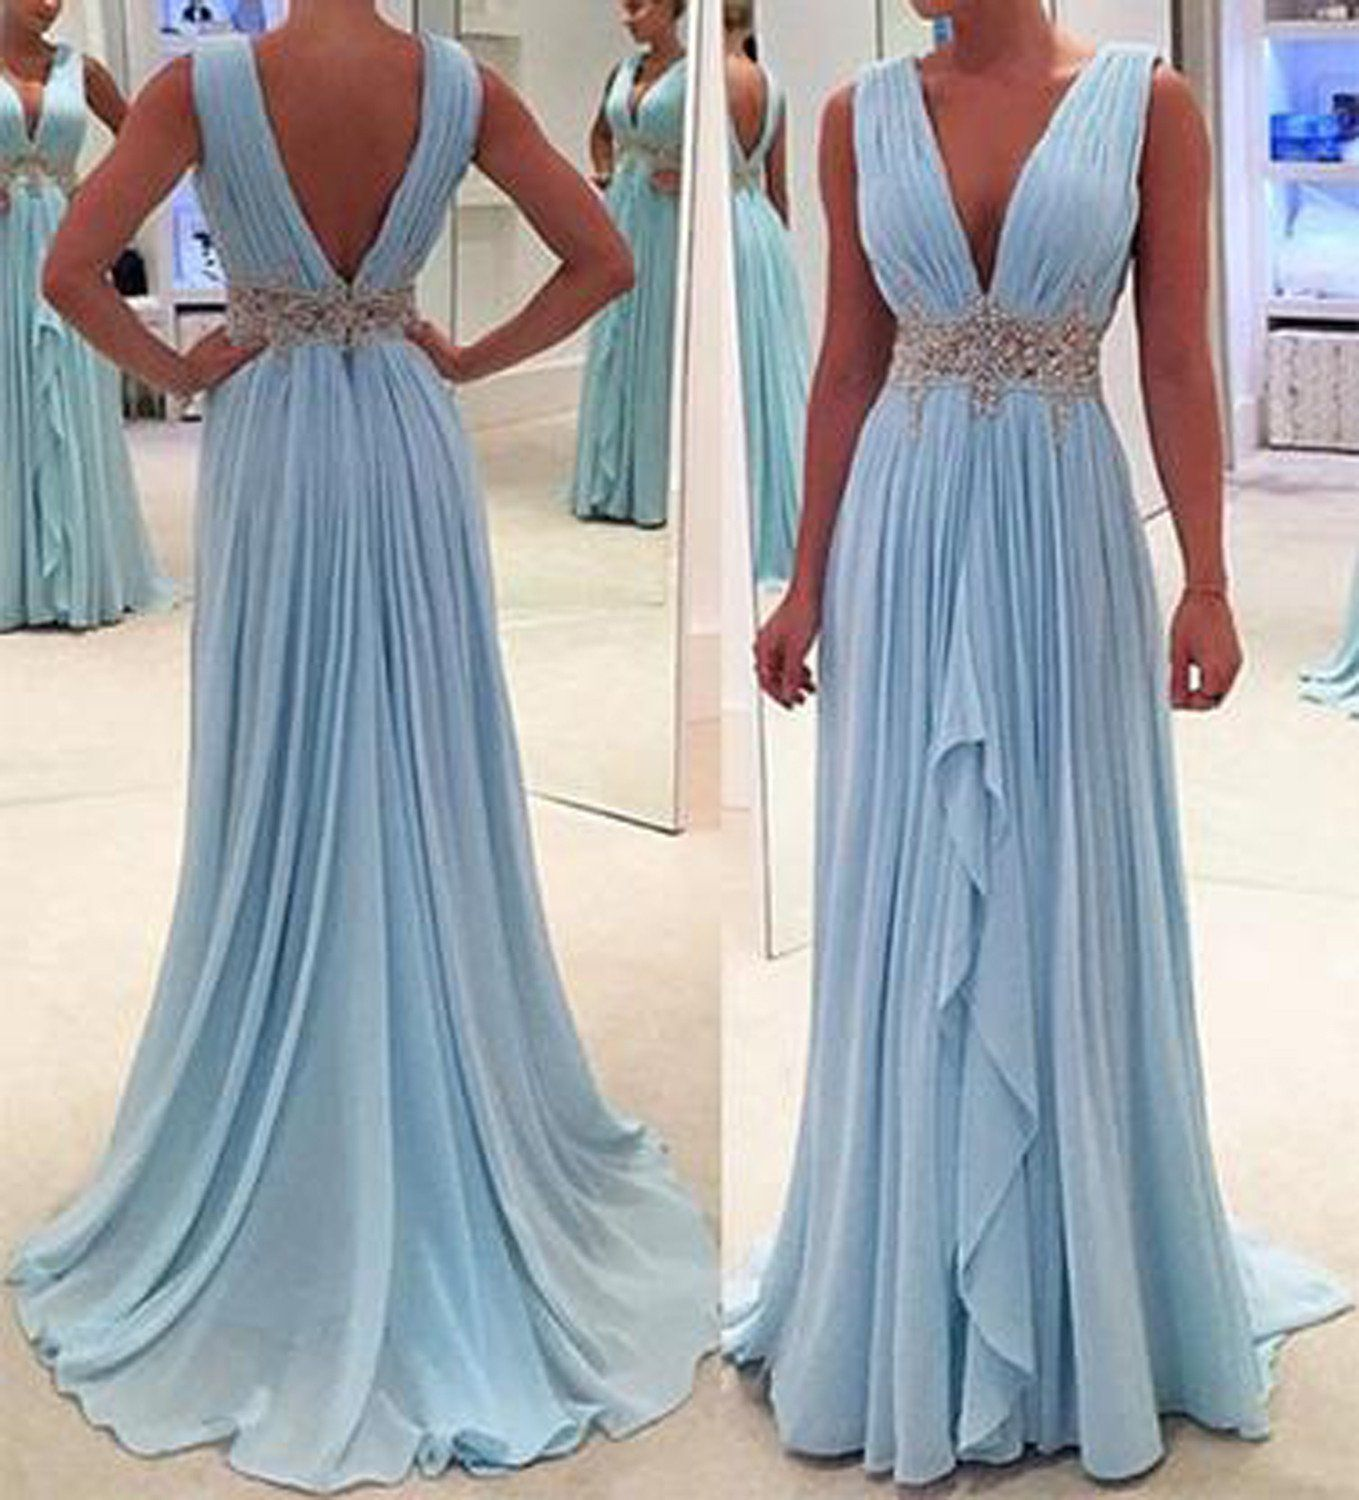 2017 Prom Dresses Ideas that Will Have All Eyes on You | Dress ...